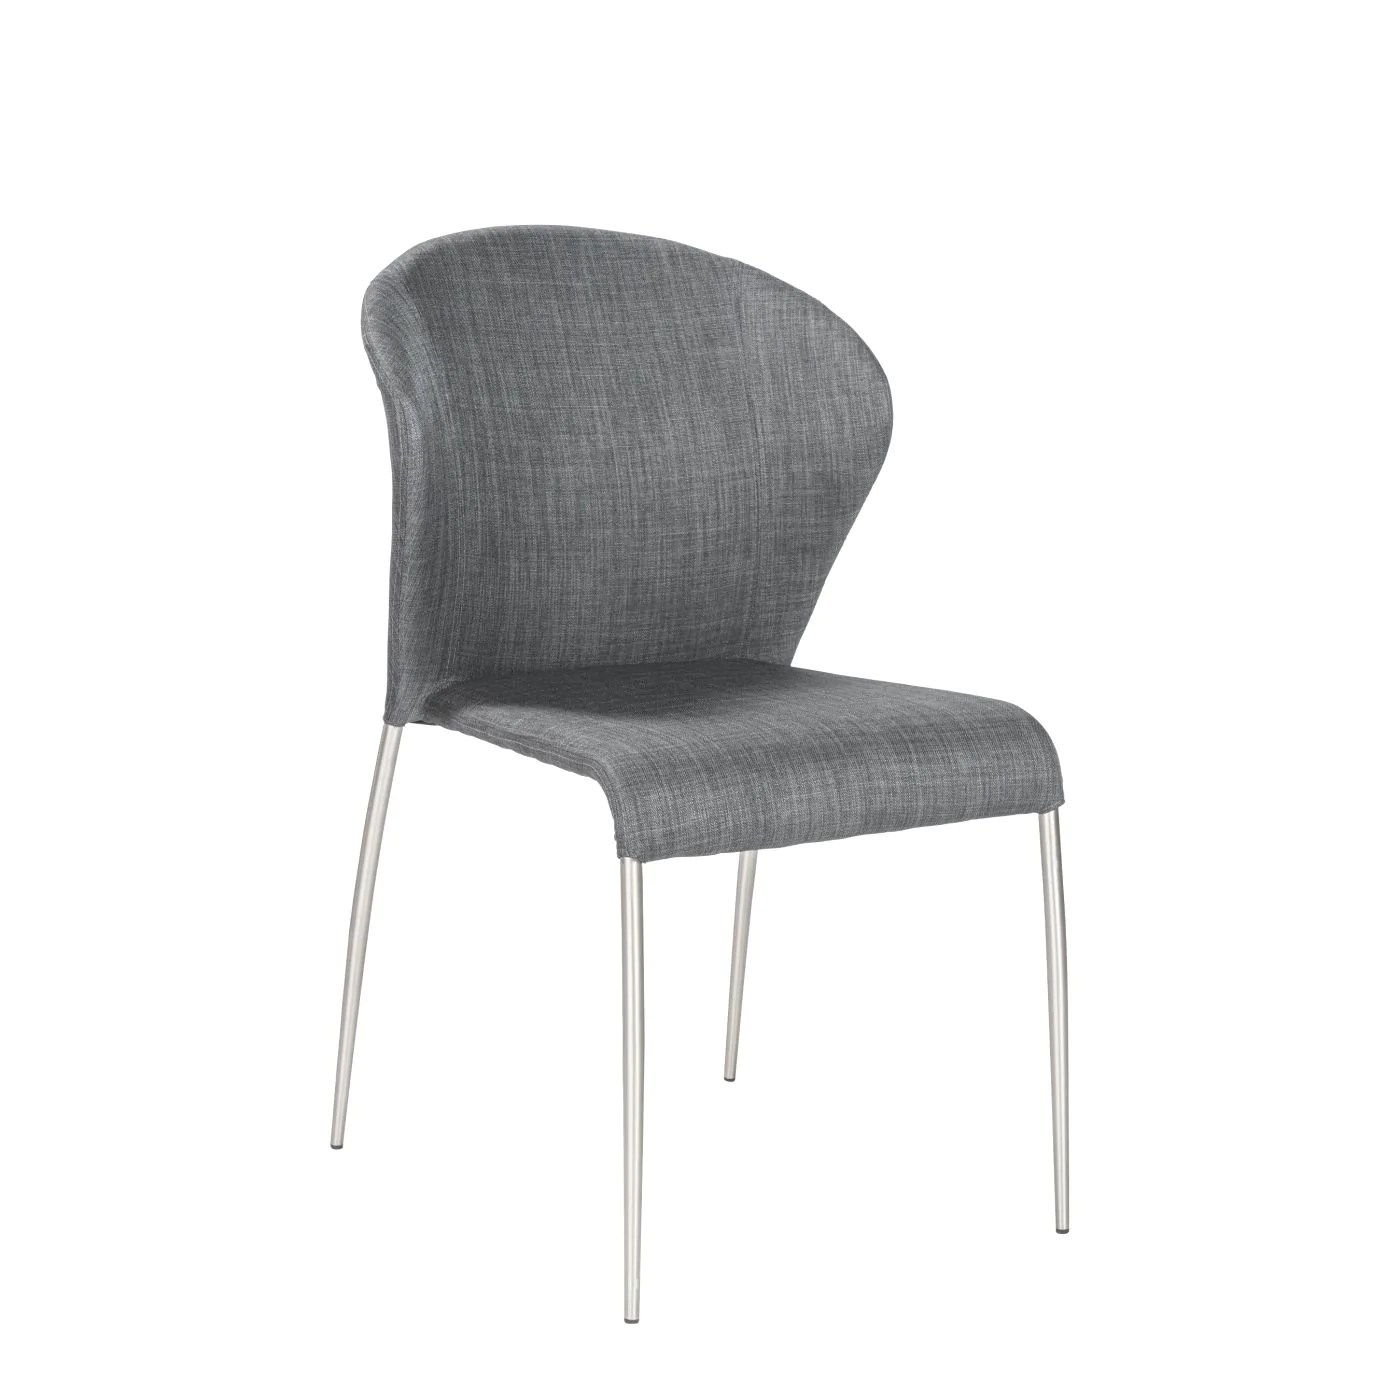 dining chairs with stainless steel legs chair back covers argos euro style sy side in charcoal brushed